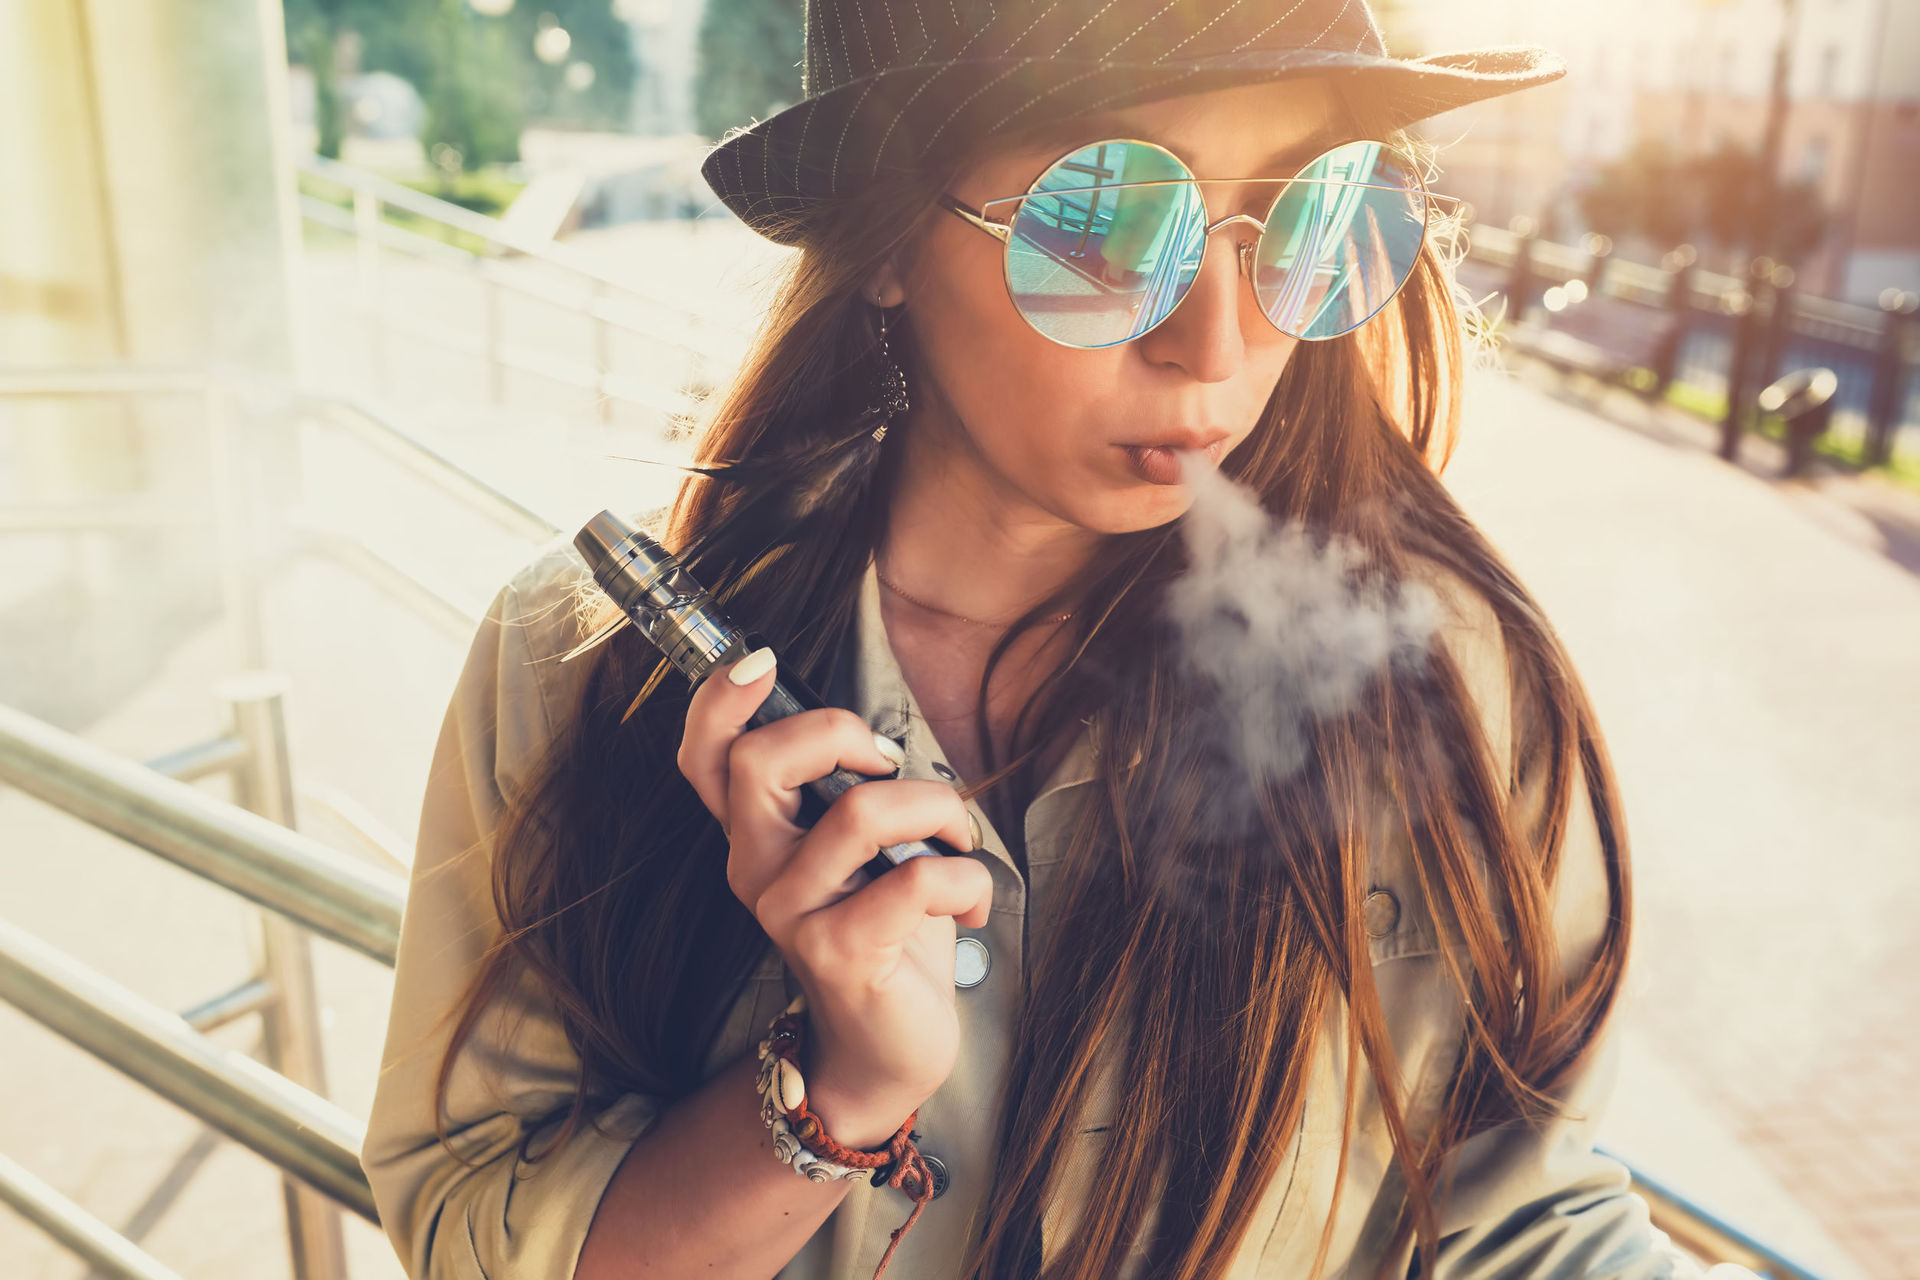 Vaping linked to female infertility, study shows